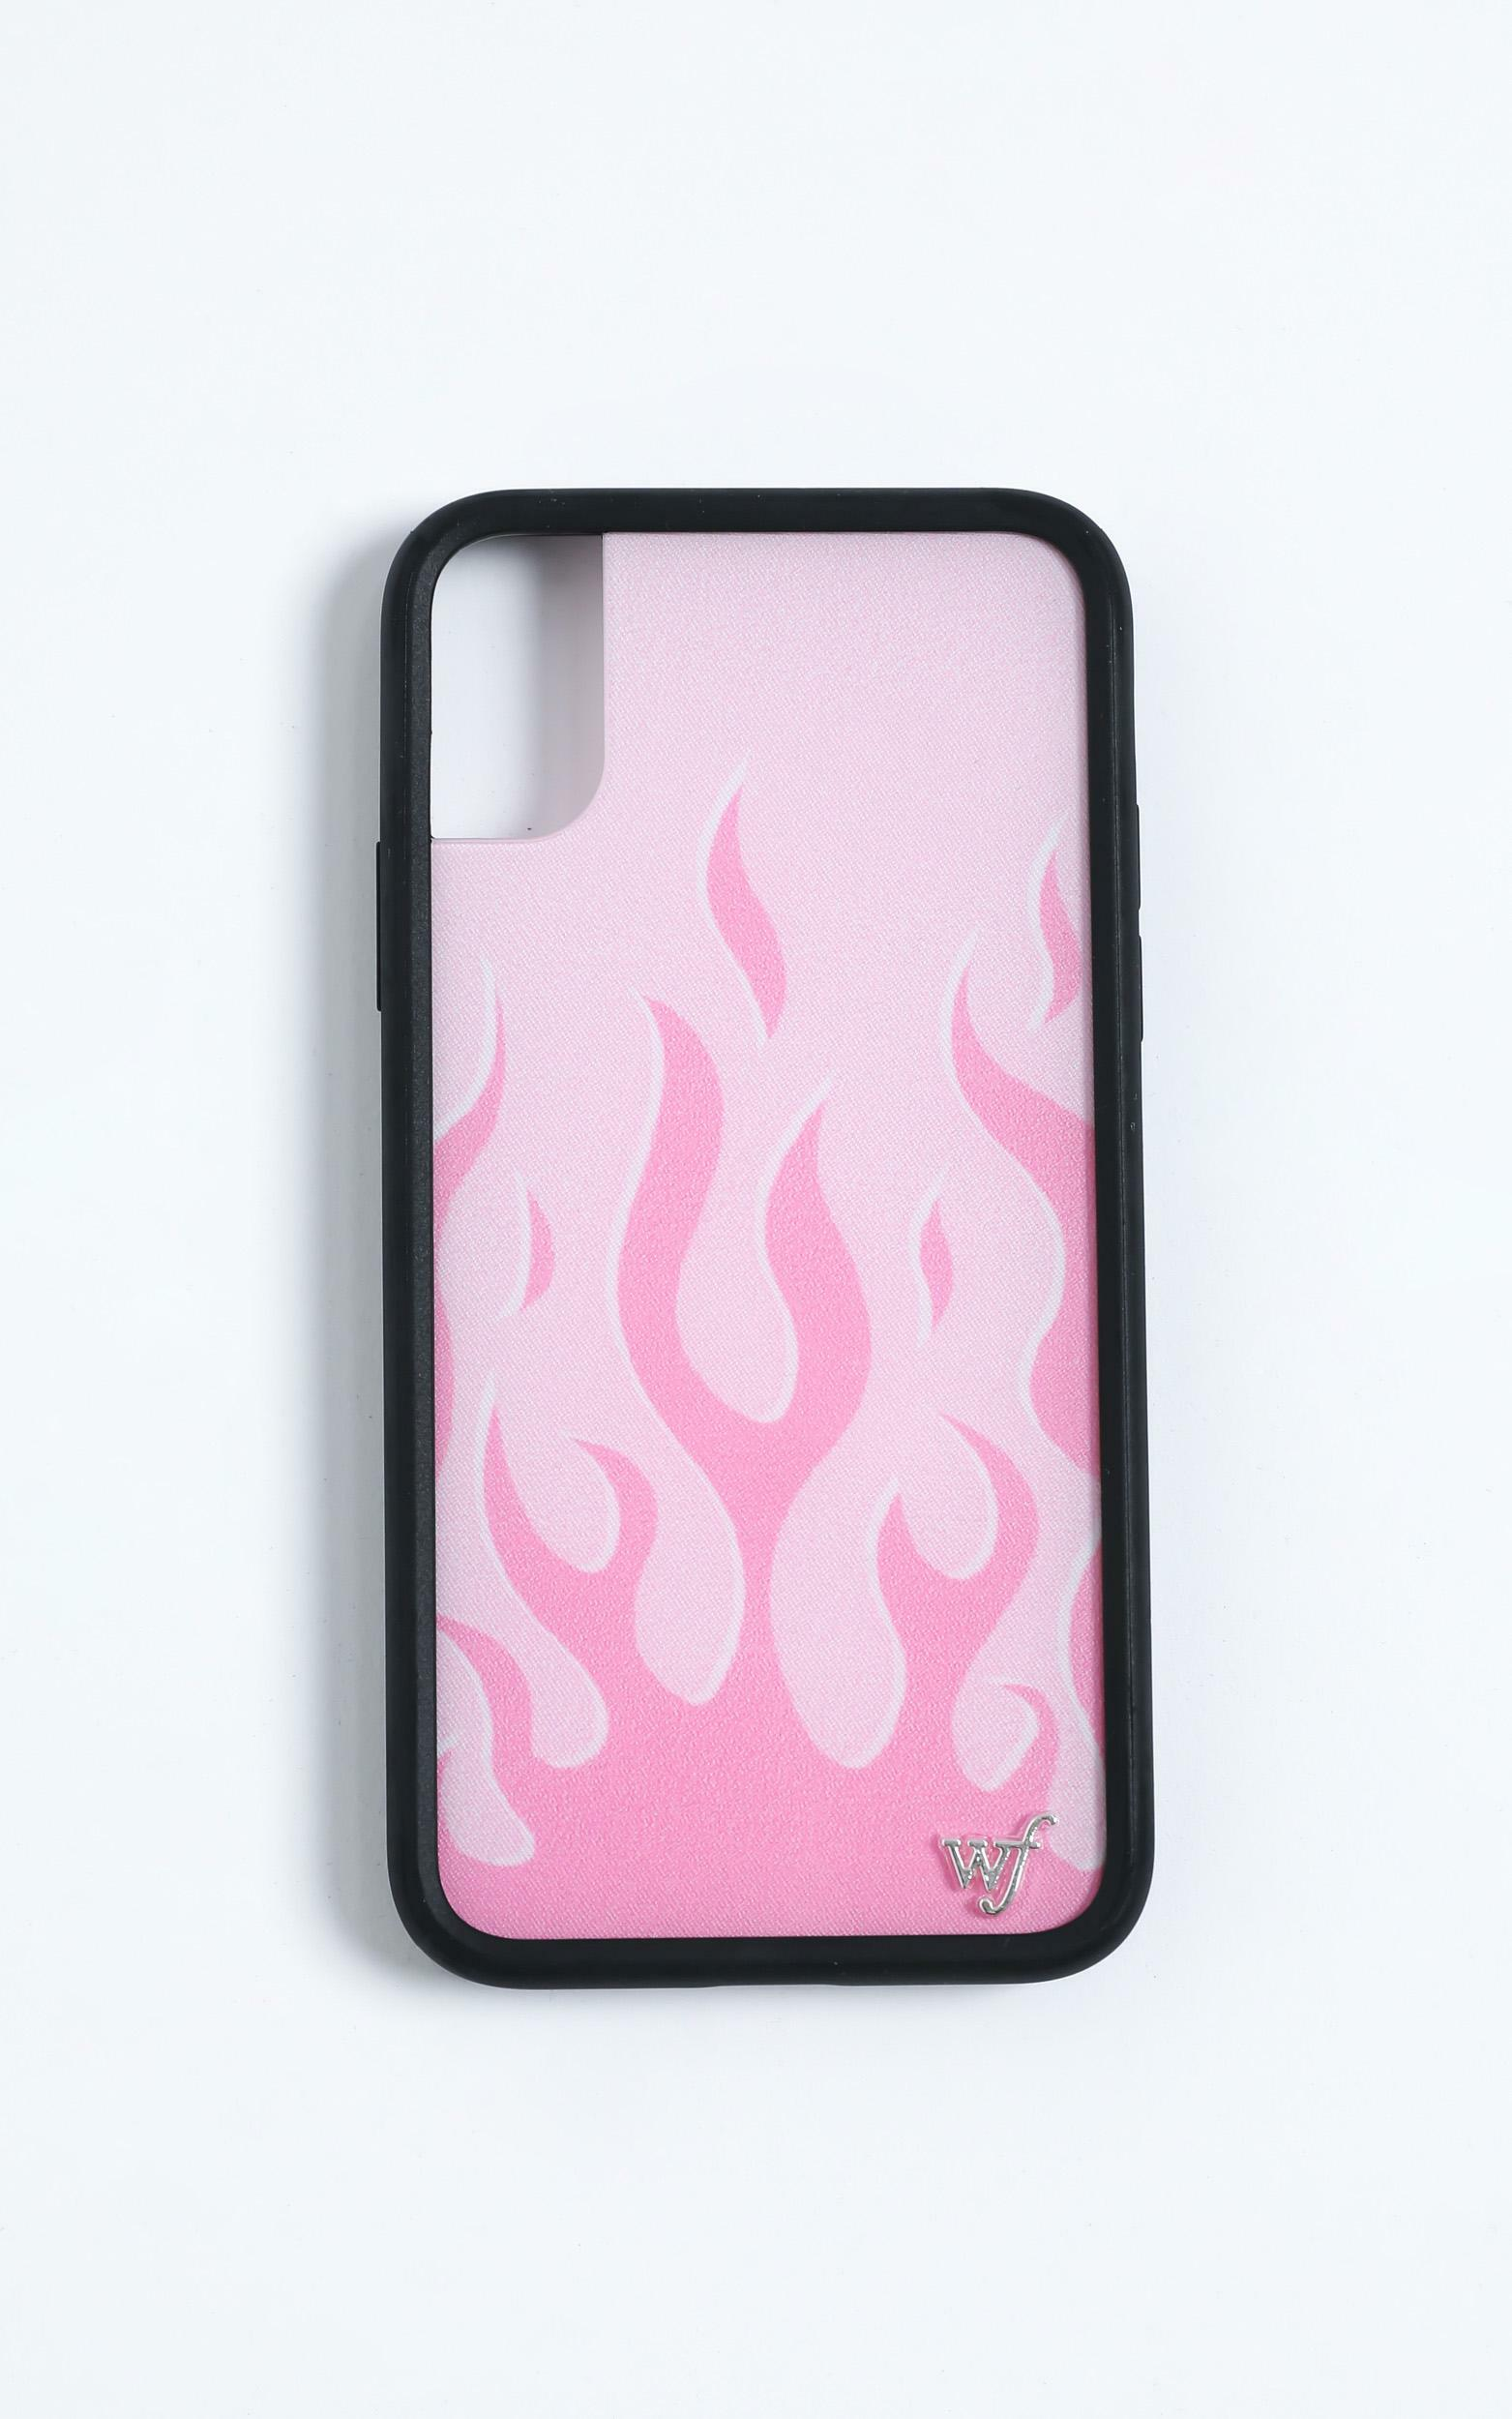 Wildflower - Iphone Case in Pink Flames - 8 Plus, PNK2, hi-res image number null